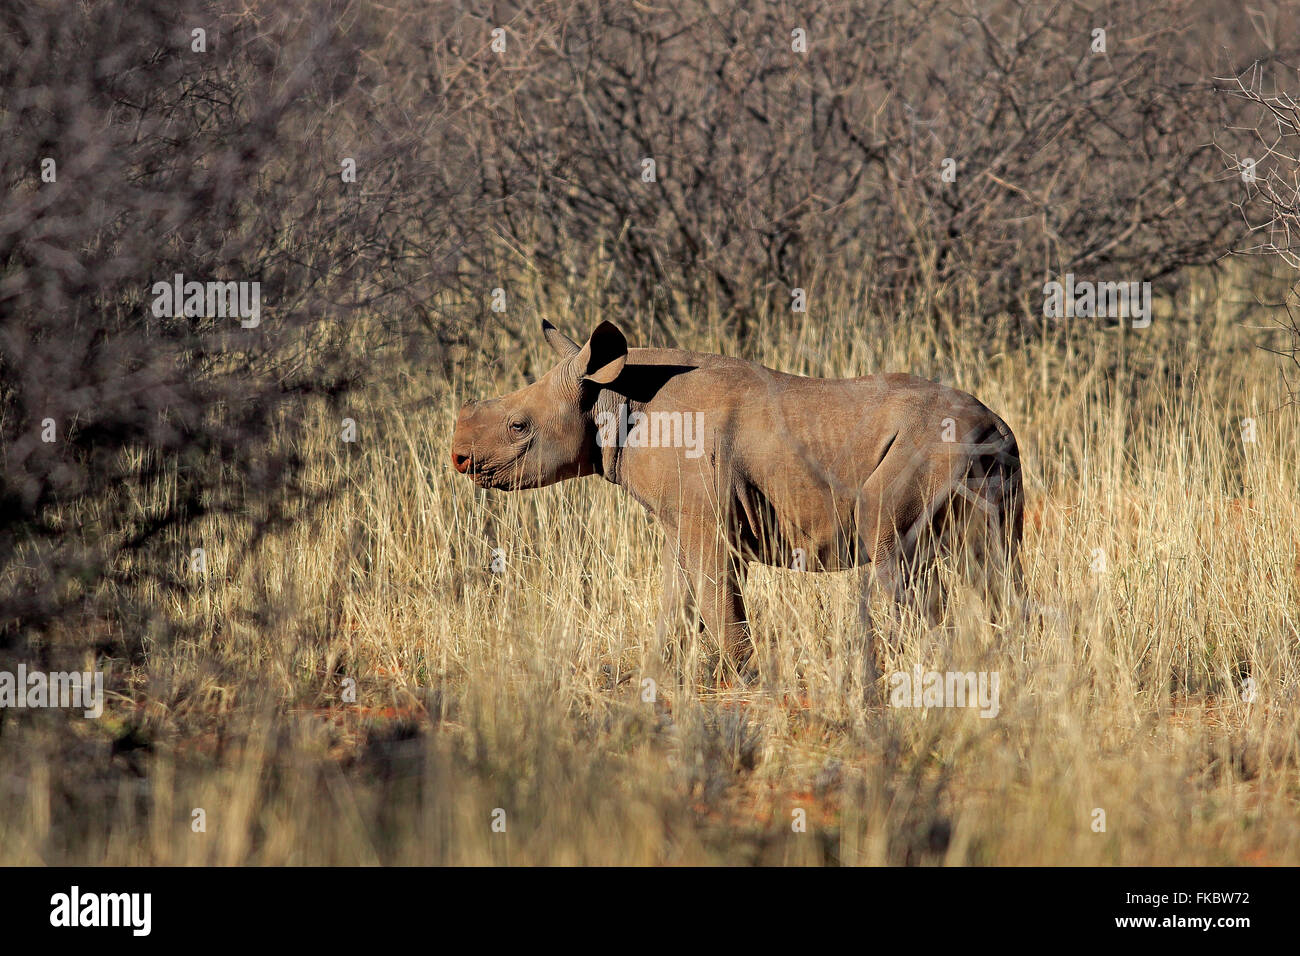 Black Rhinoceros, hook-lipped rhinoceros, young, Tswalu Game Reserve, Kalahari, Northern Cape, South Africa, Africa - Stock Image